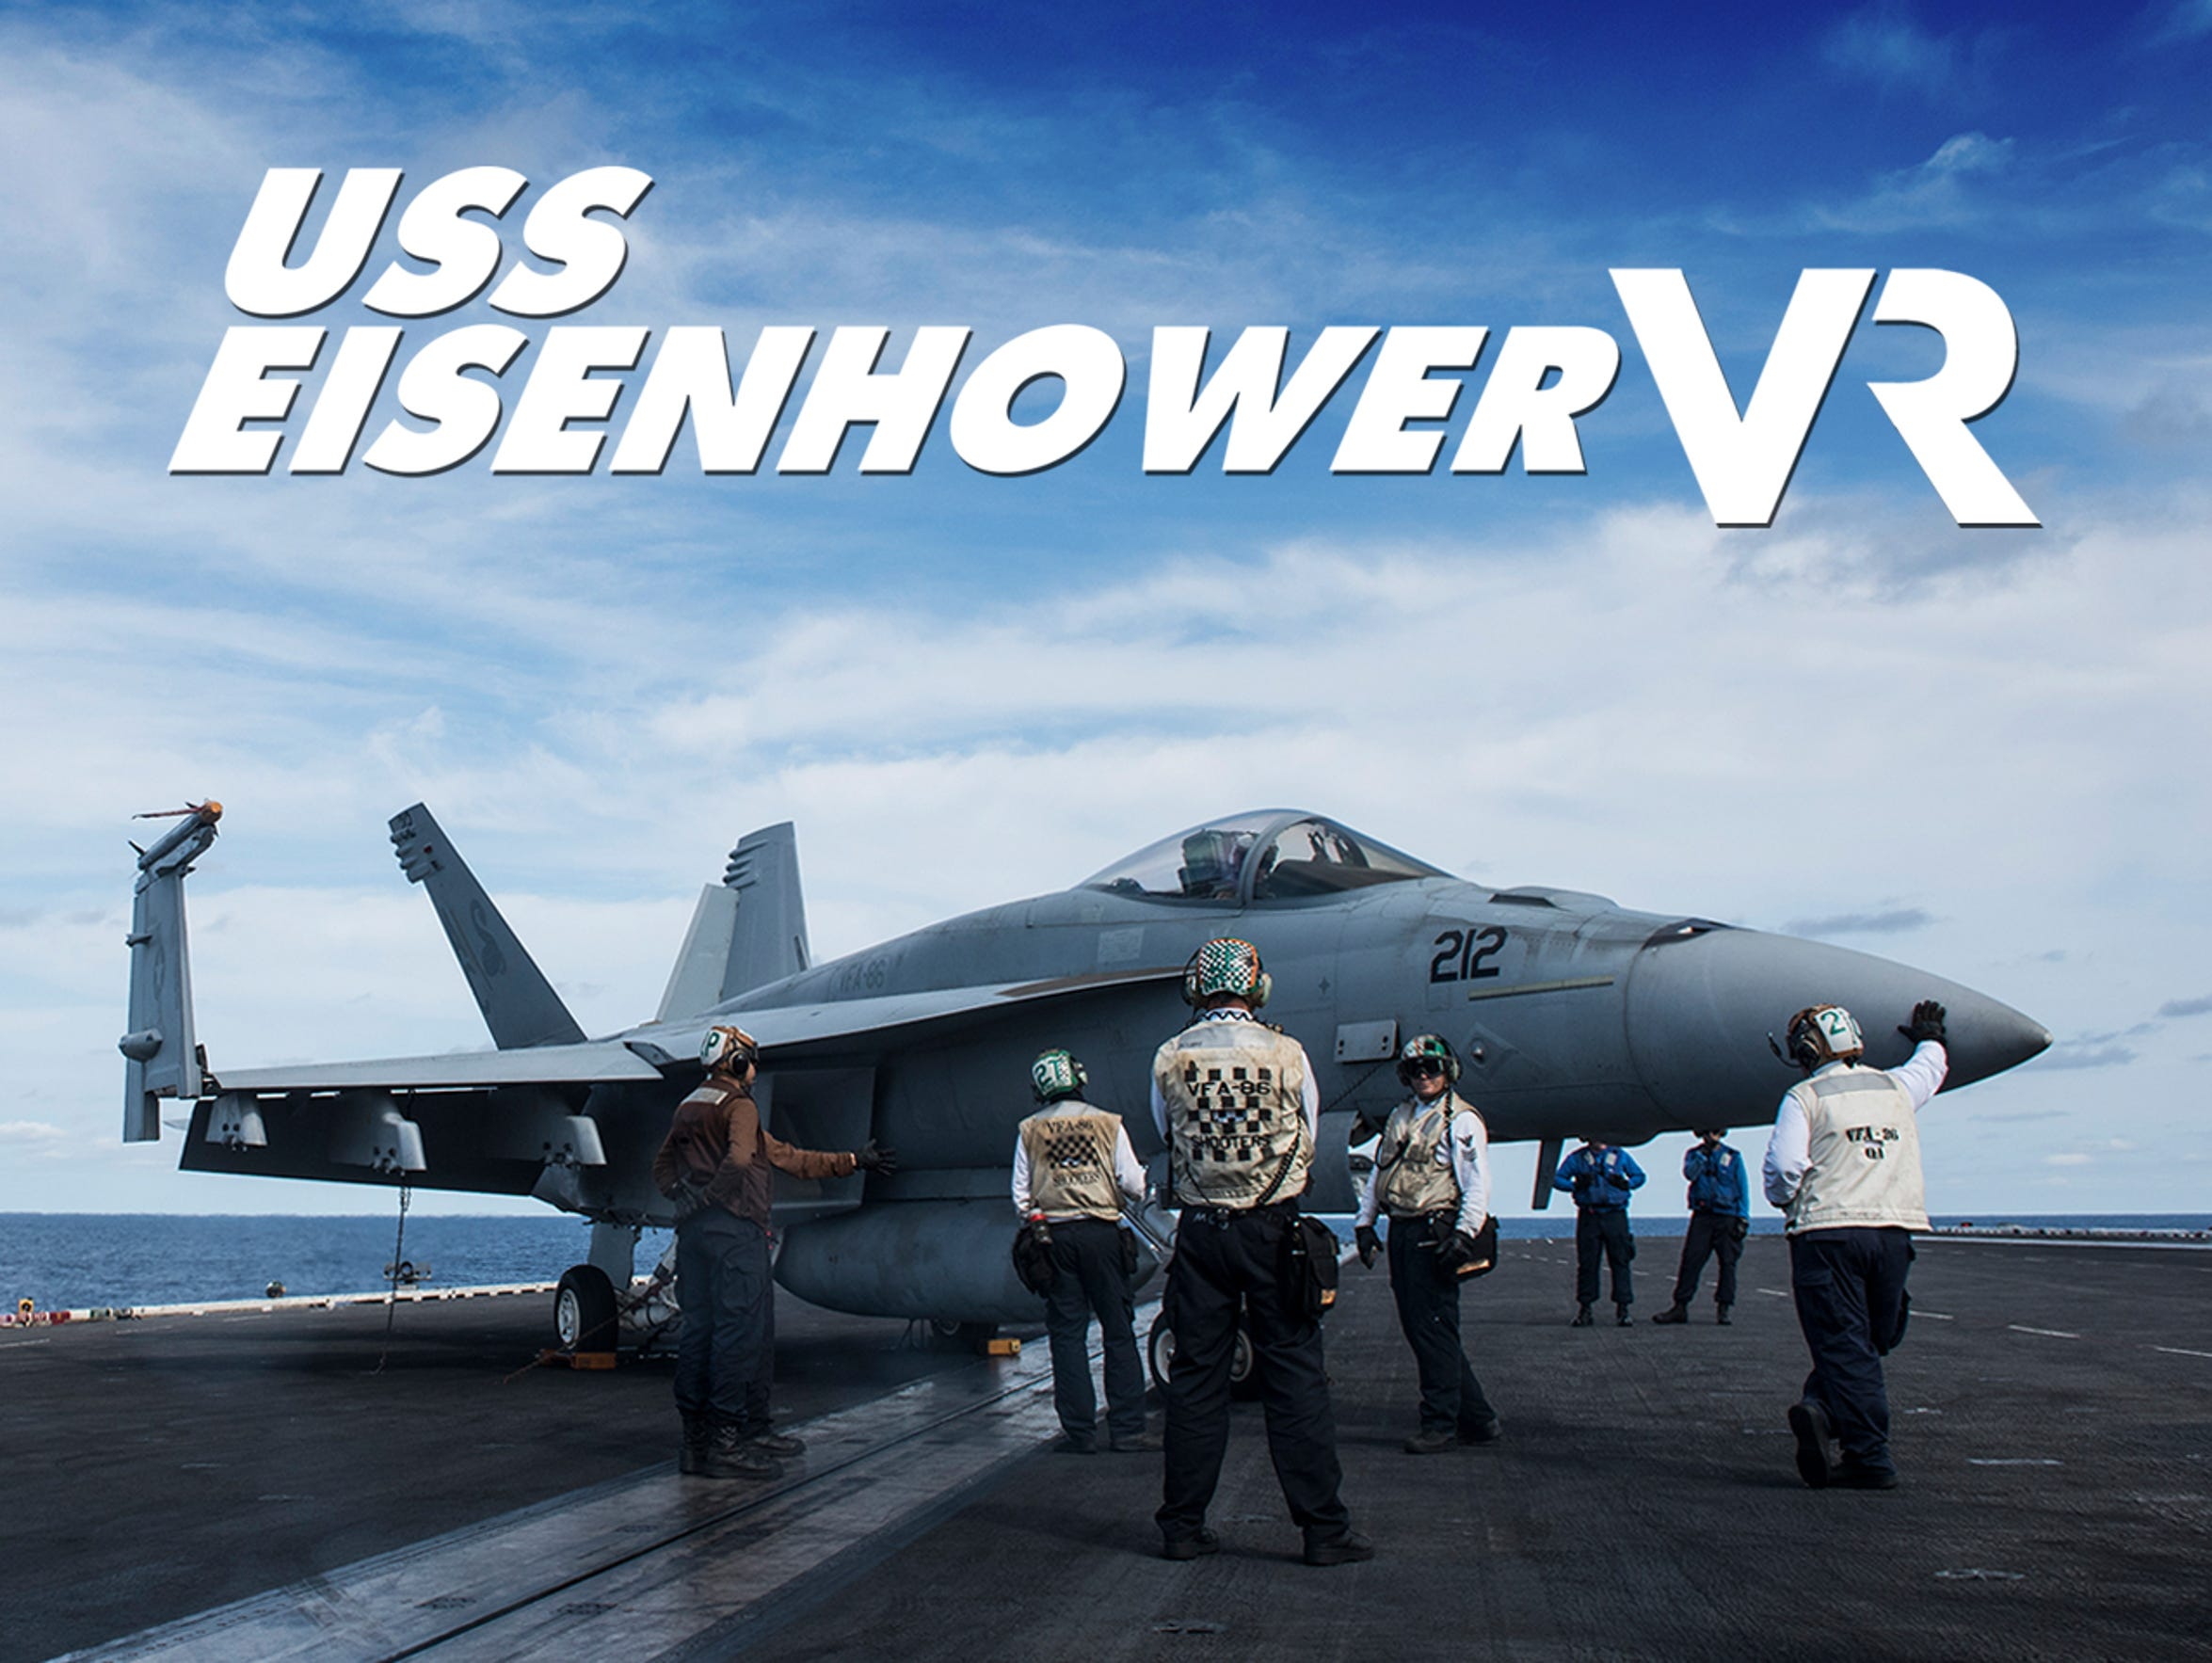 The USA TODAY NETWORK presents 'USS Eisenhower VR',